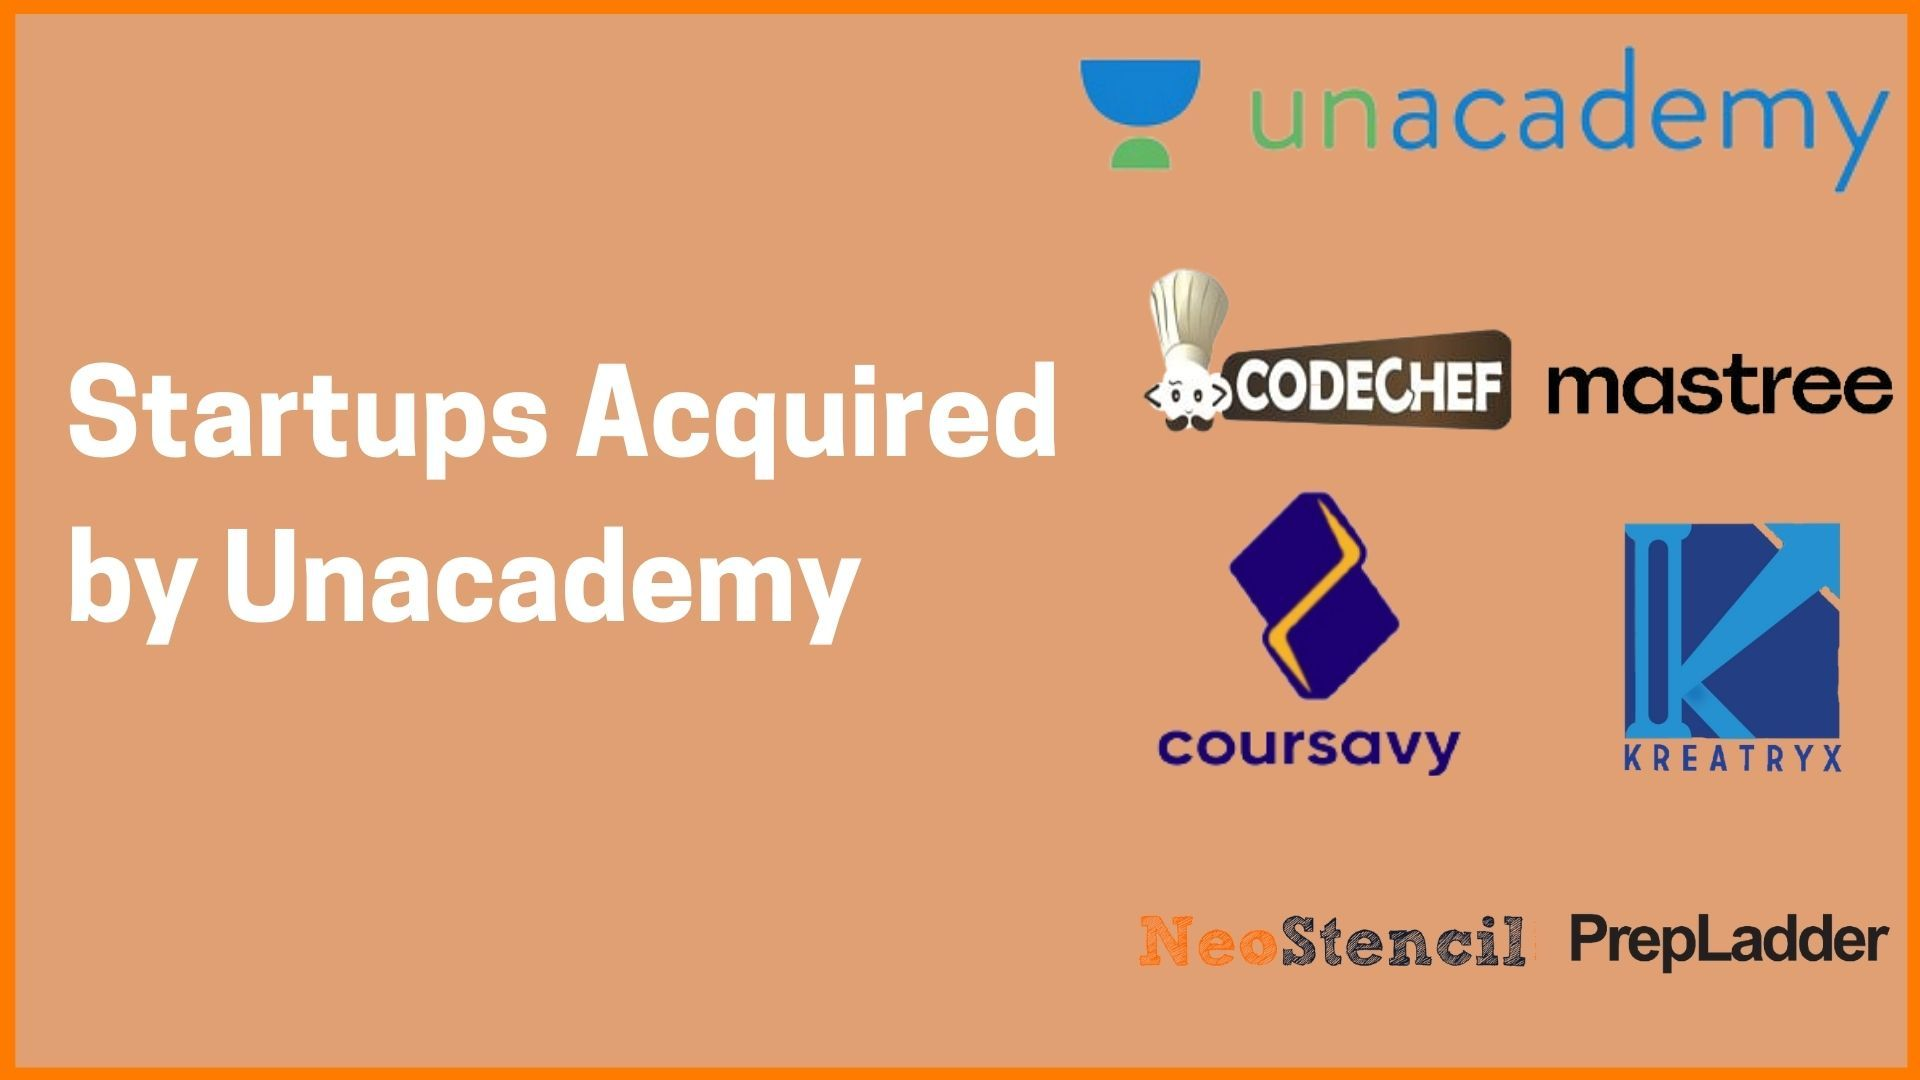 List of Startups Acquired by Unacademy